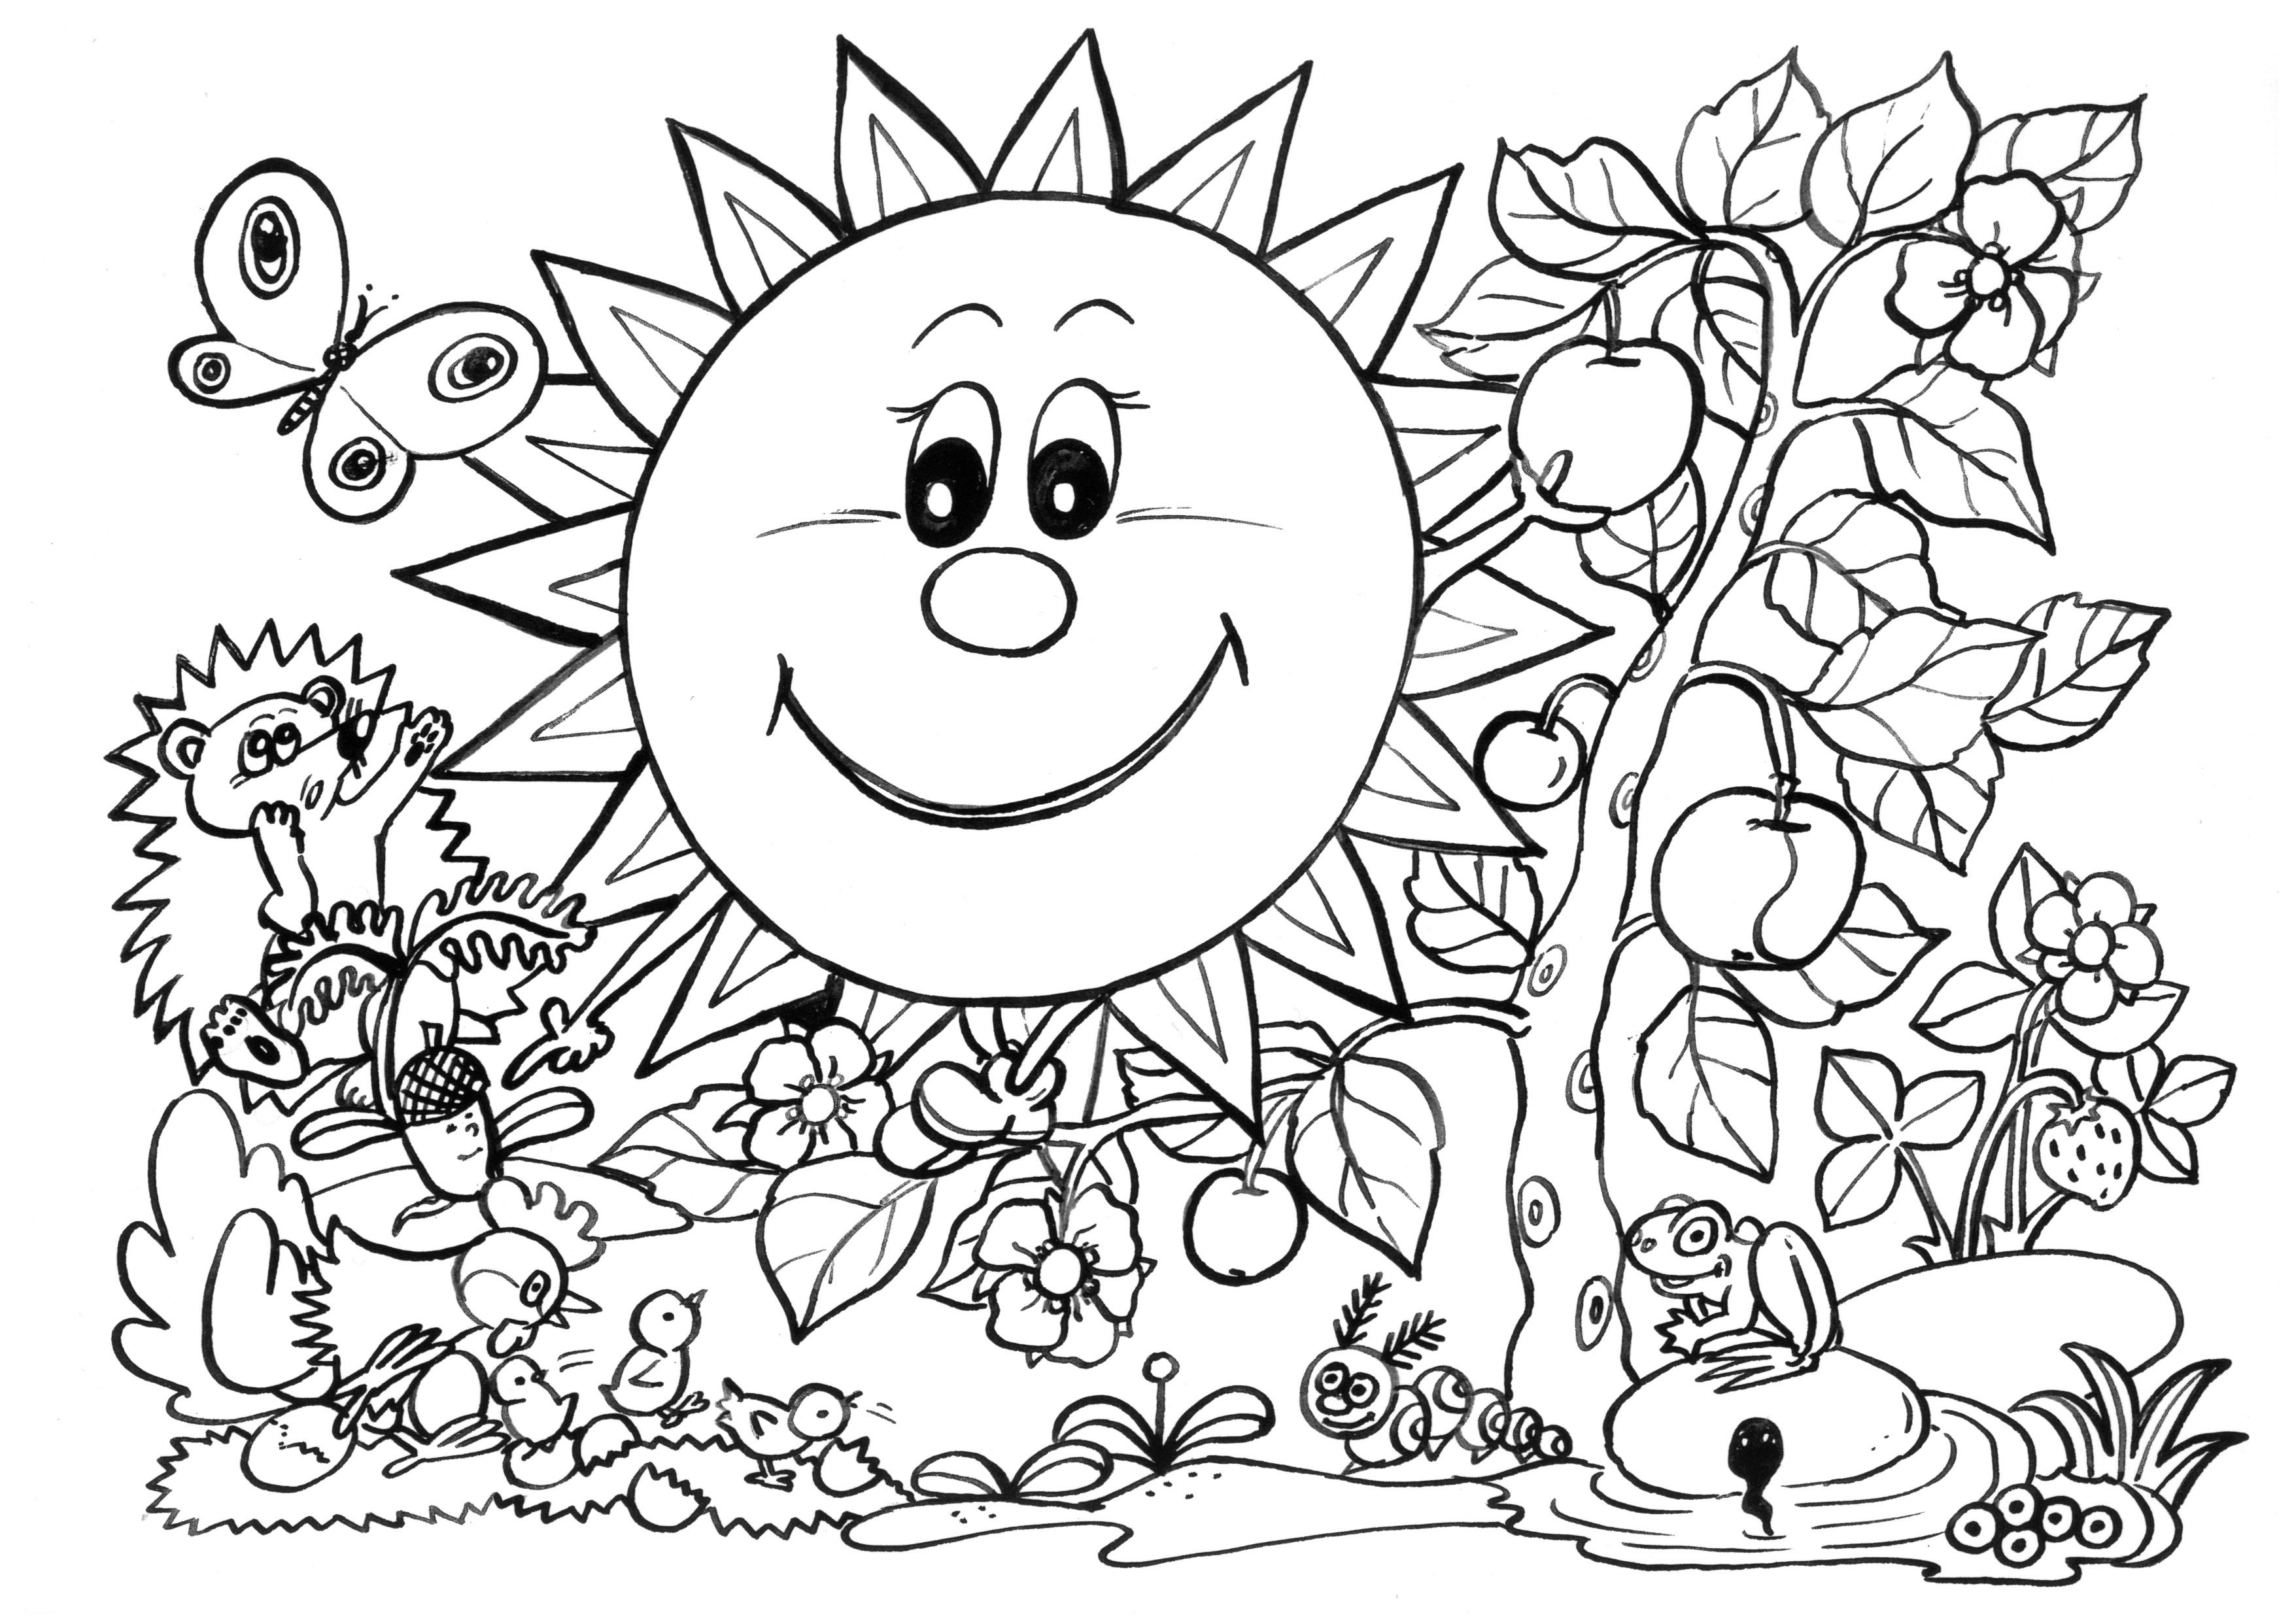 Spring house coloring pages - Free Coloring Pages Of Nature Drawing To Color Nature Coloring